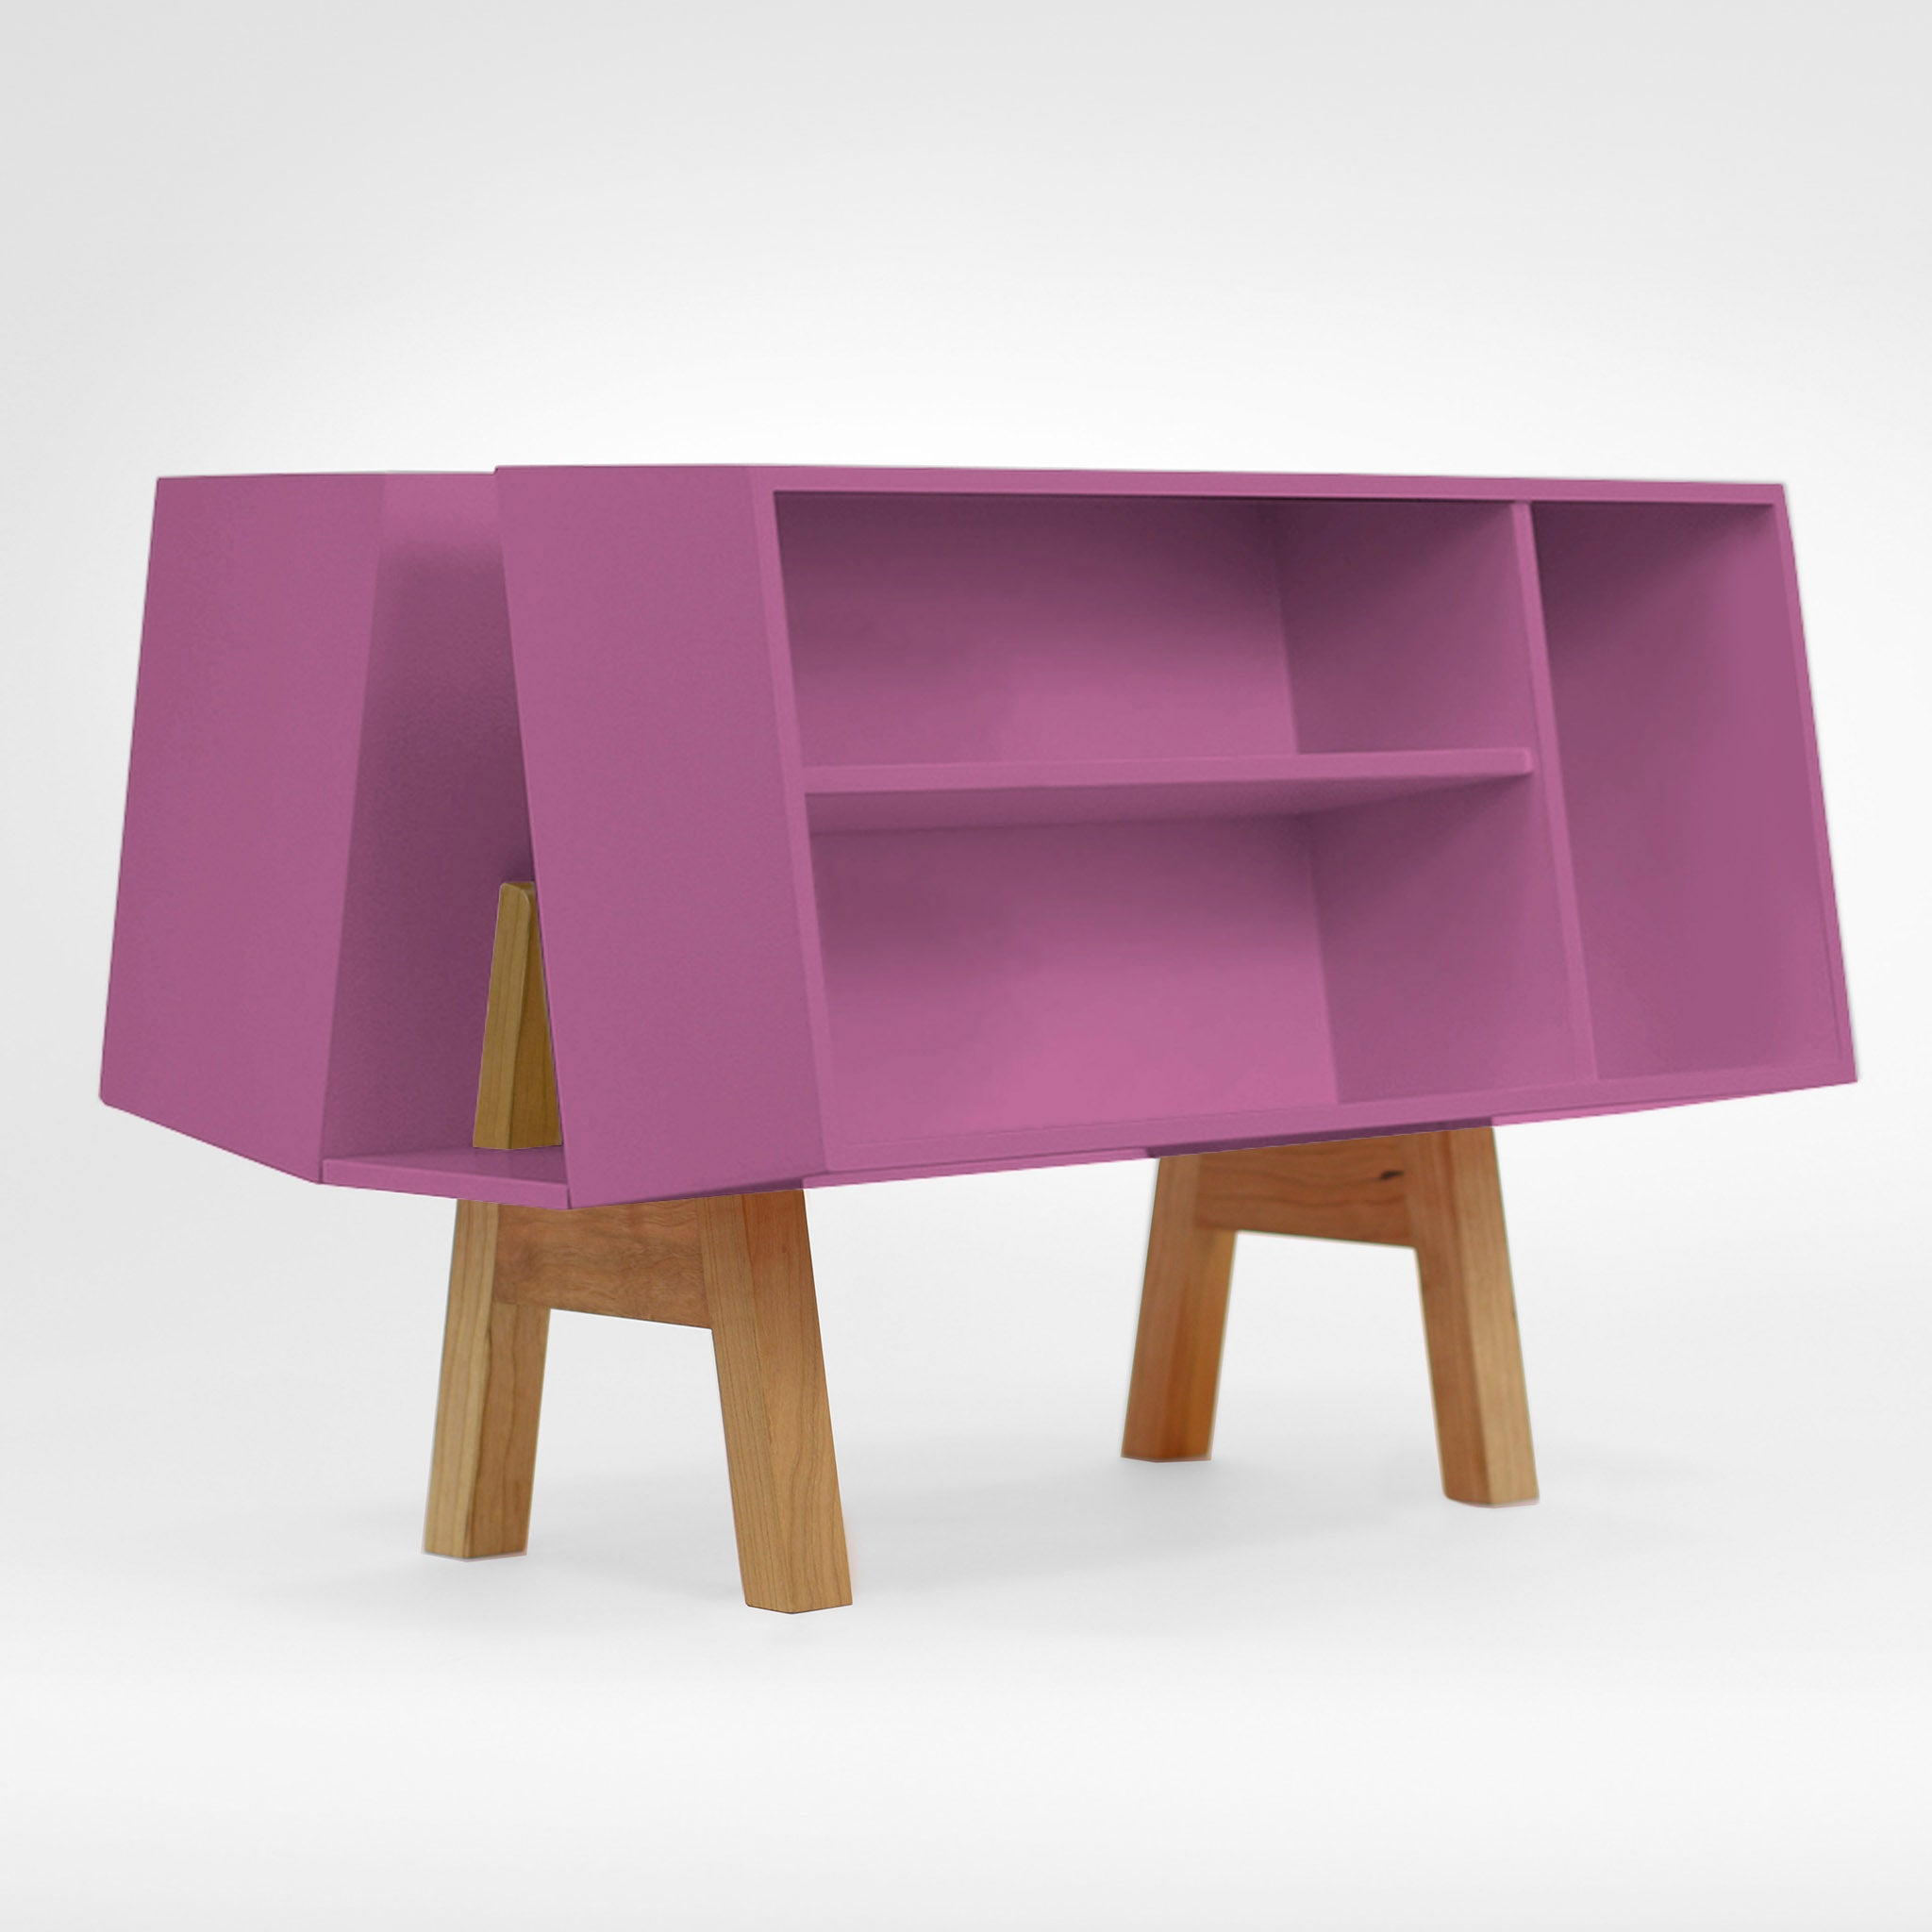 Isokon Penguin Donkey Mark 2: Sci-fi Purple